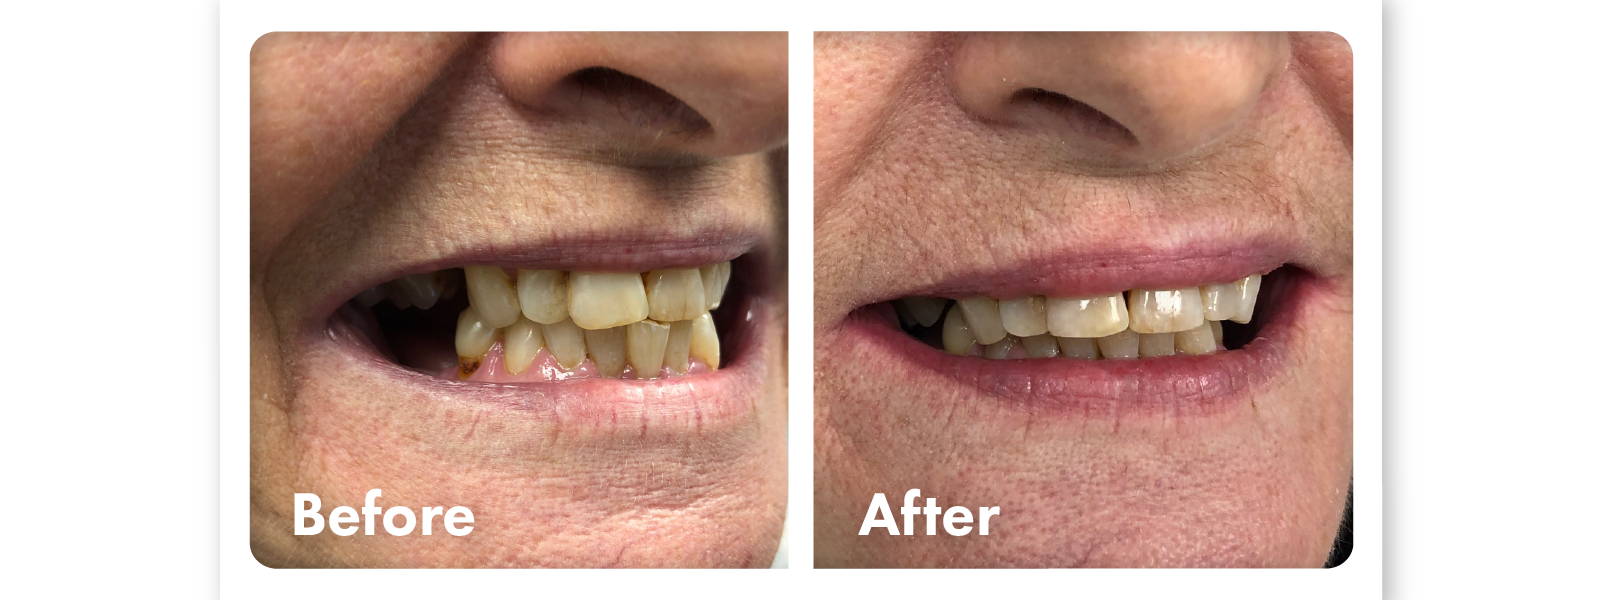 Before and after photos of smile contouring